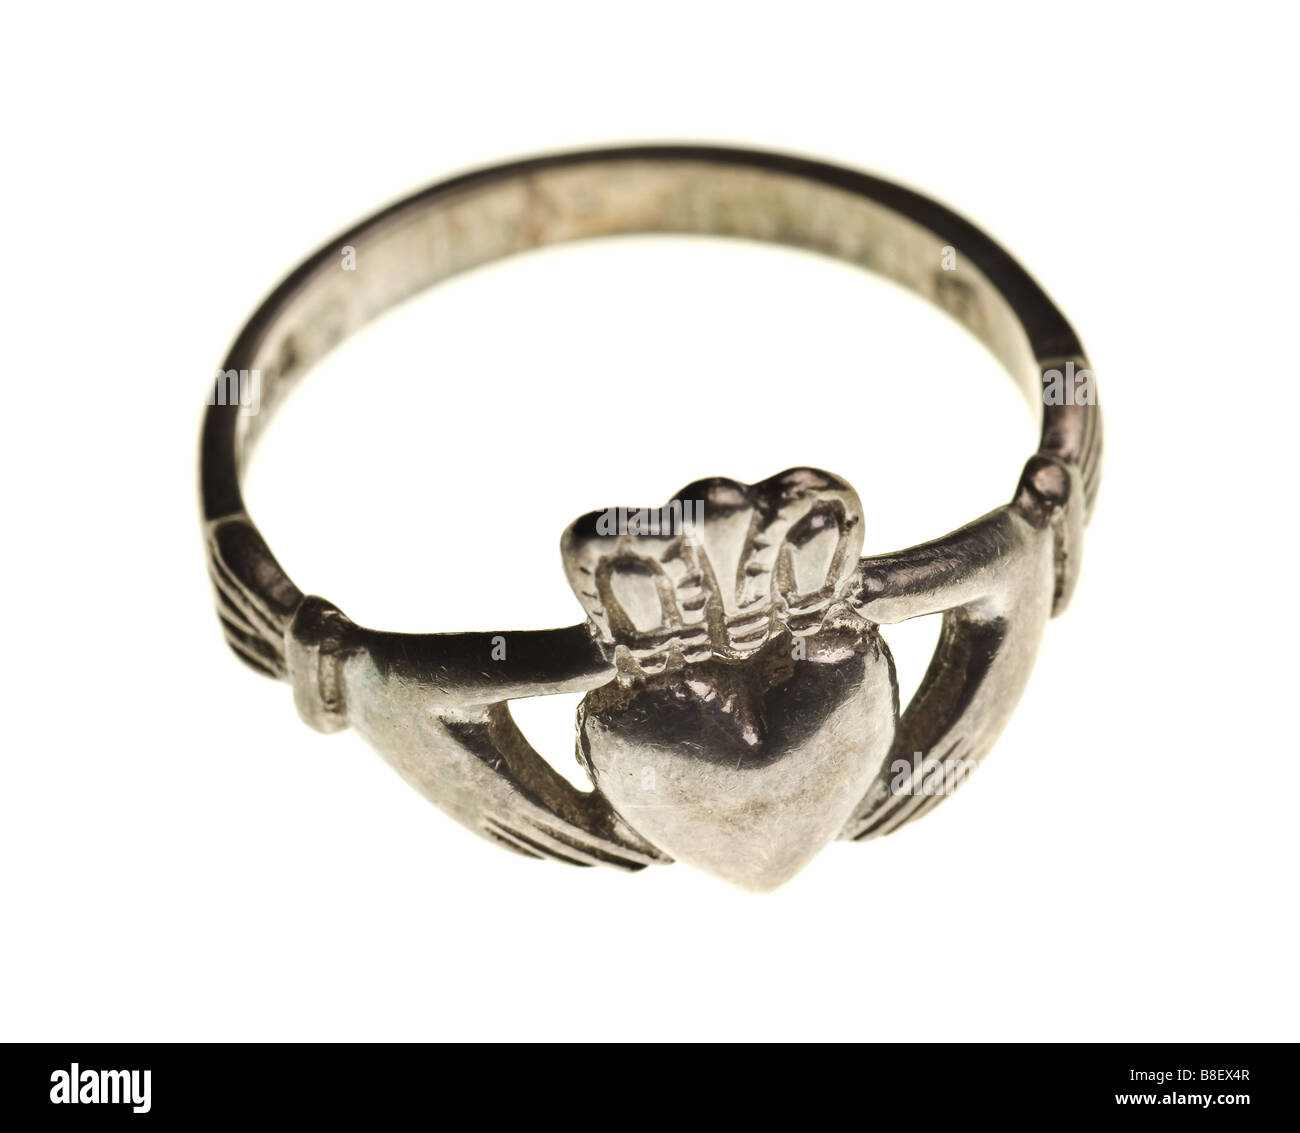 vintage traditional Claddagh ring isolated on a pure white background - Stock Image